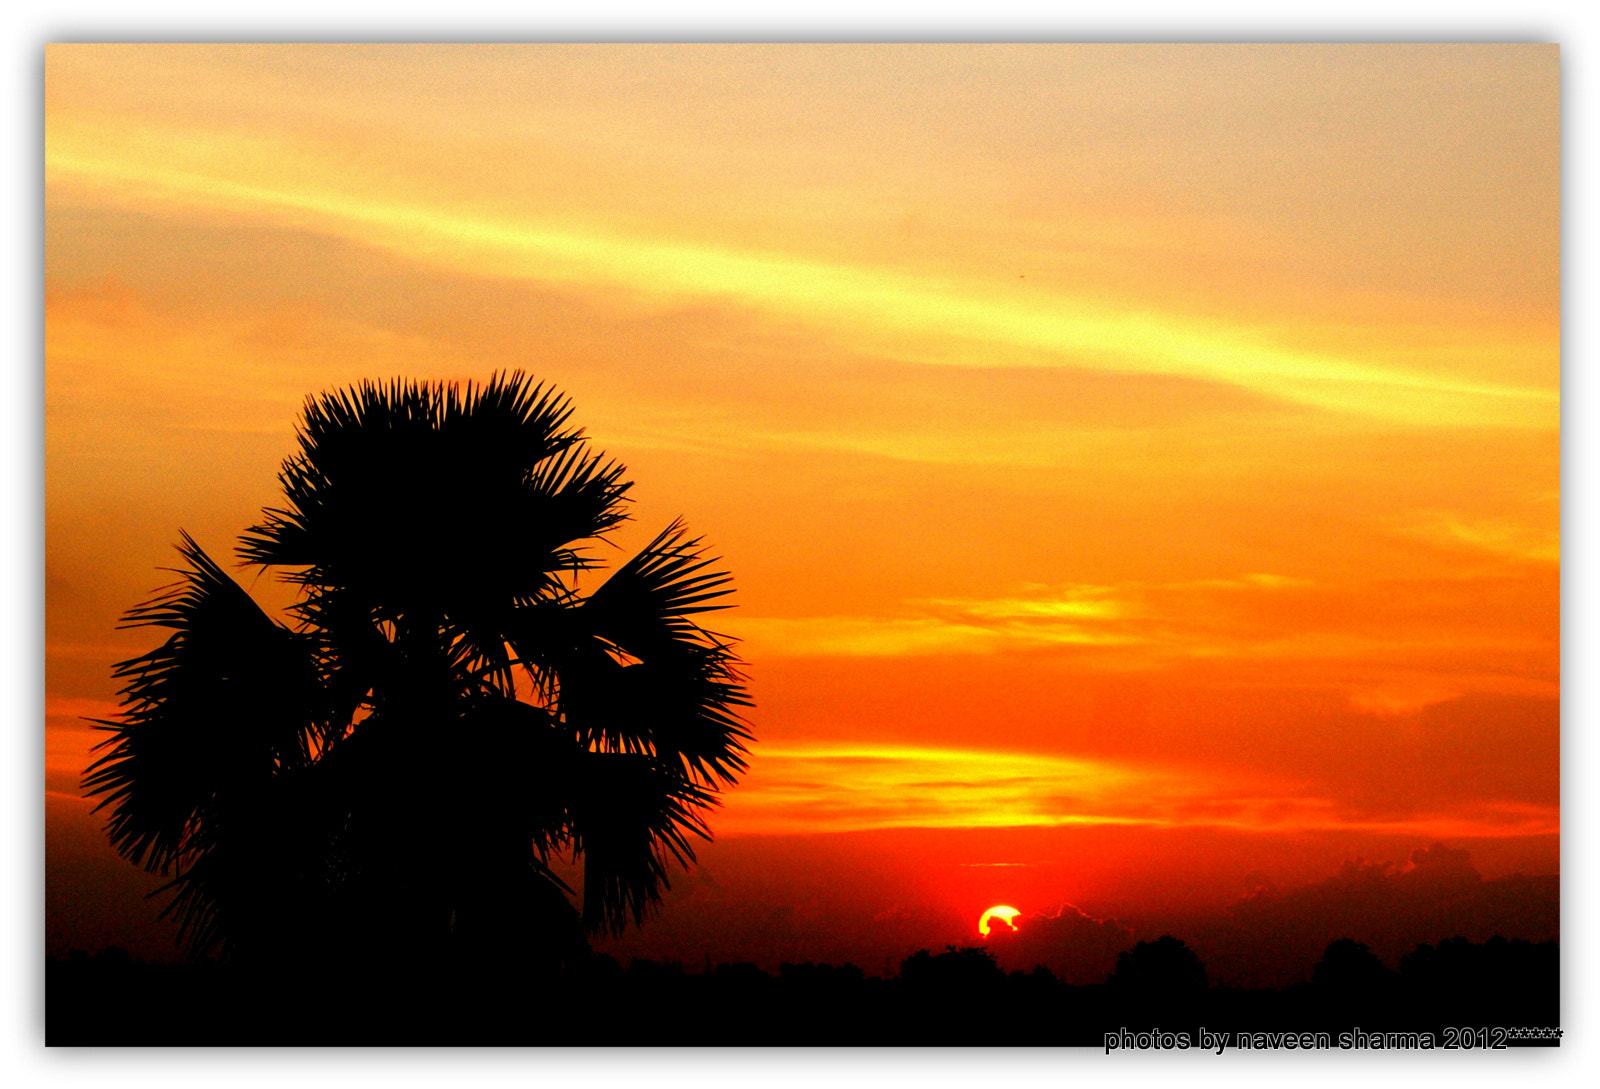 Photograph SUNSETTING B PALM TREE by naveen sharma on 500px